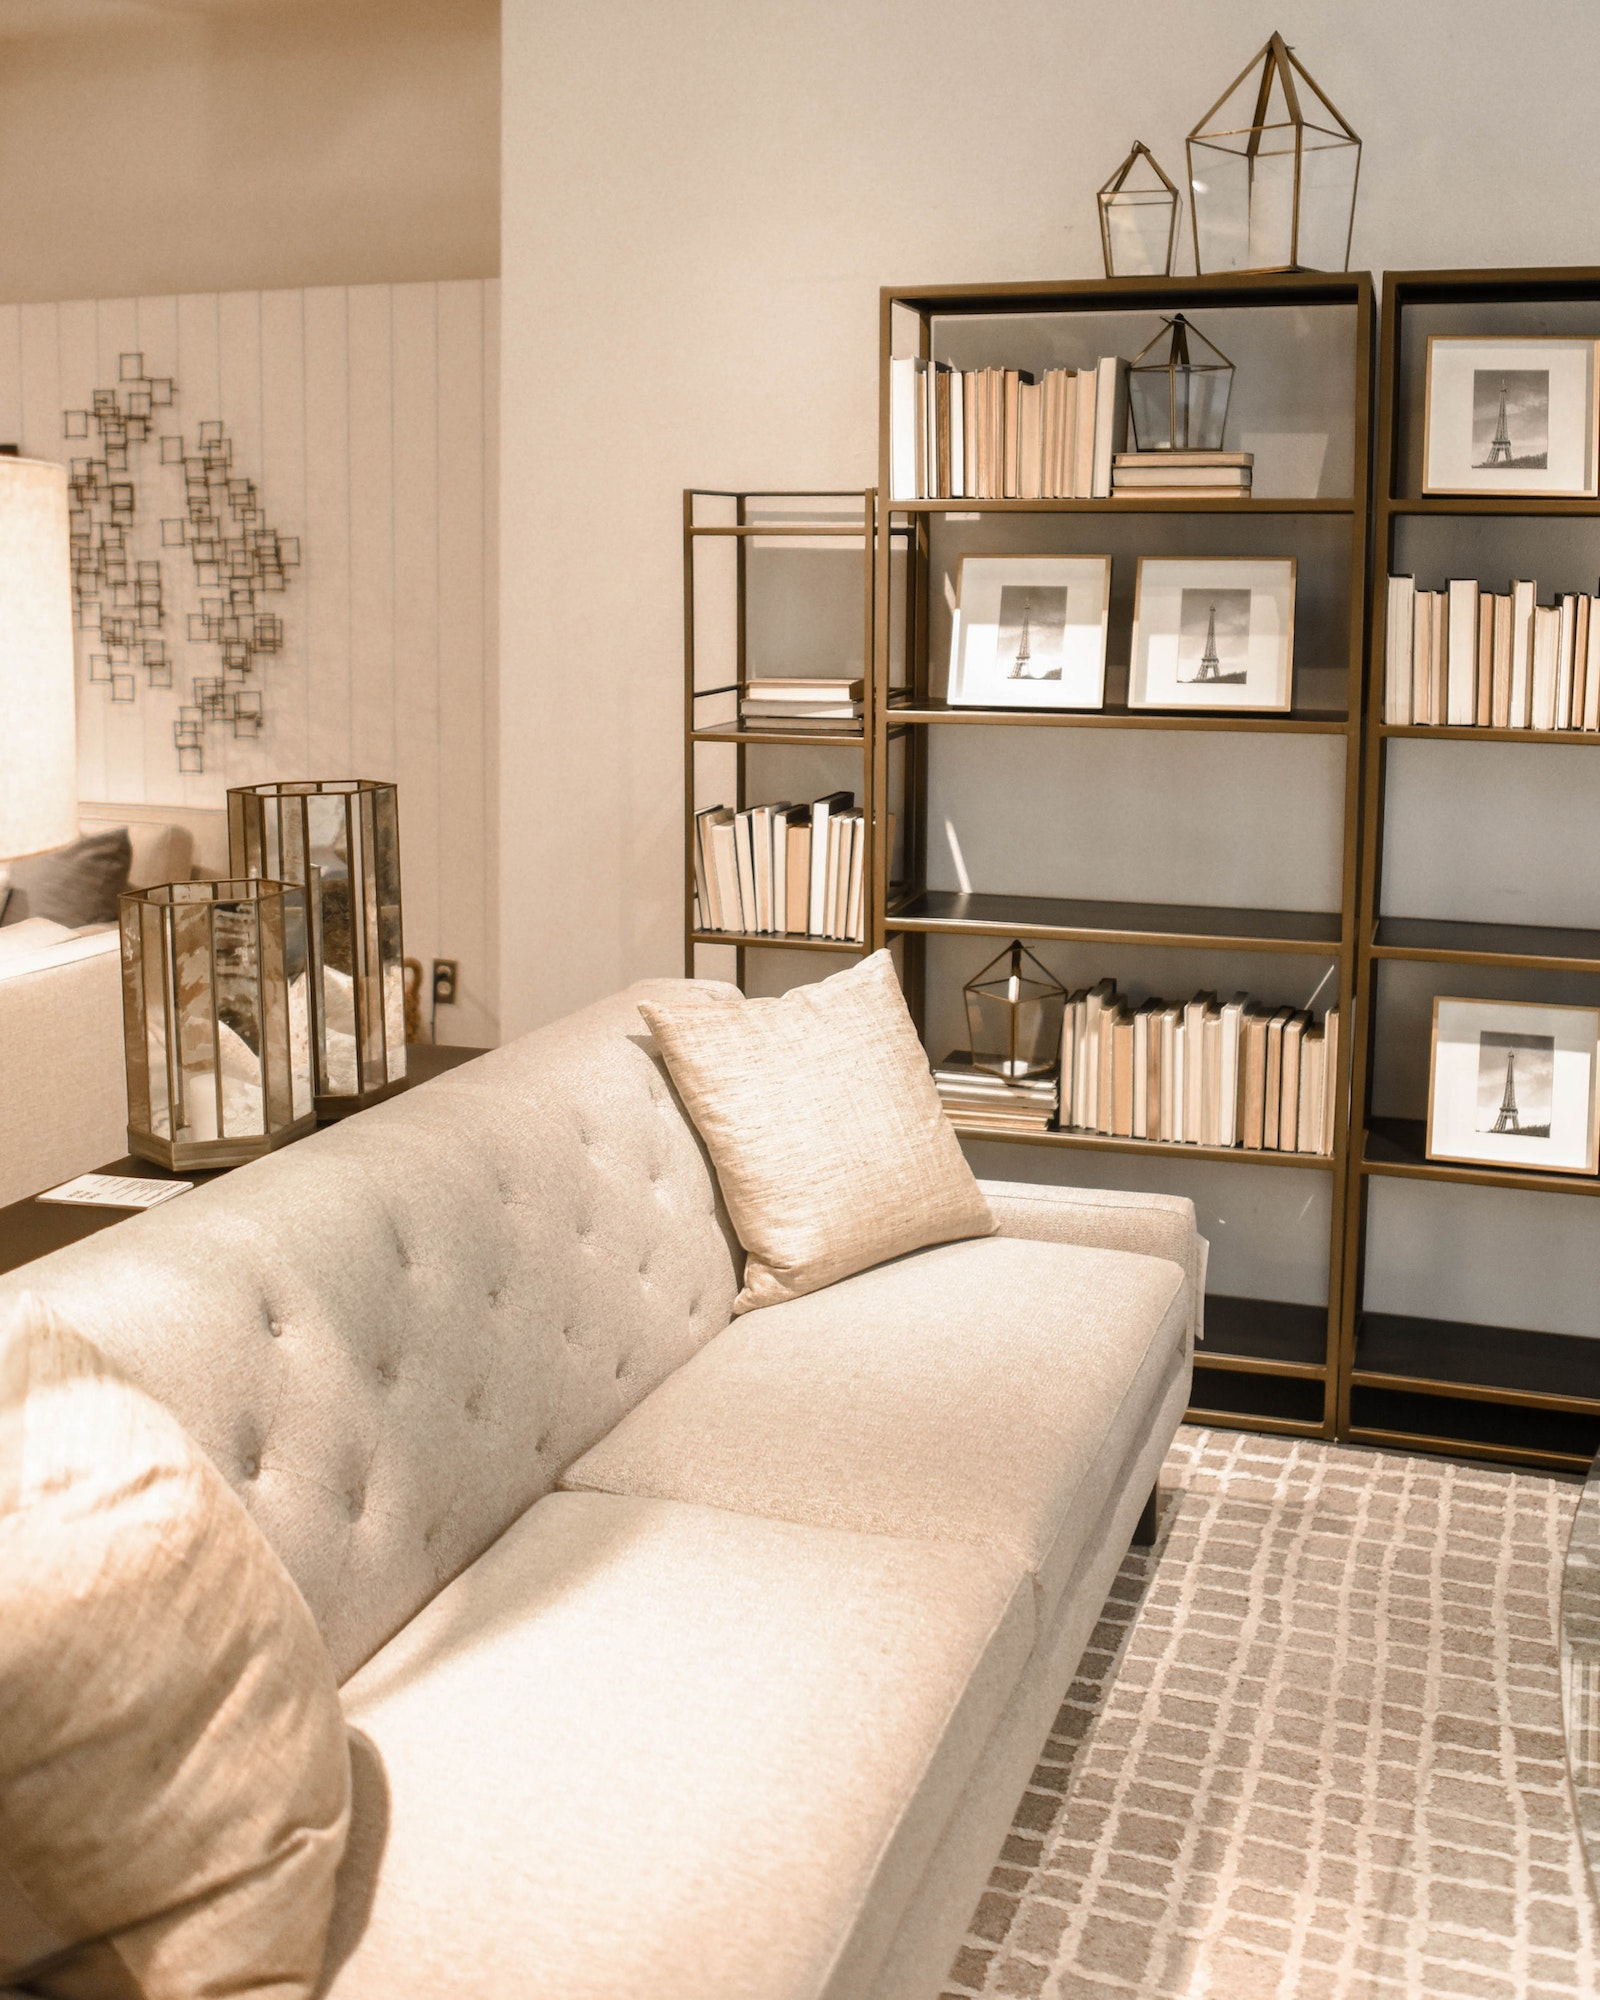 Improve your home with easy renovation tips | Home Interiors | Elle Blonde Luxury Lifestyle Destination Blog